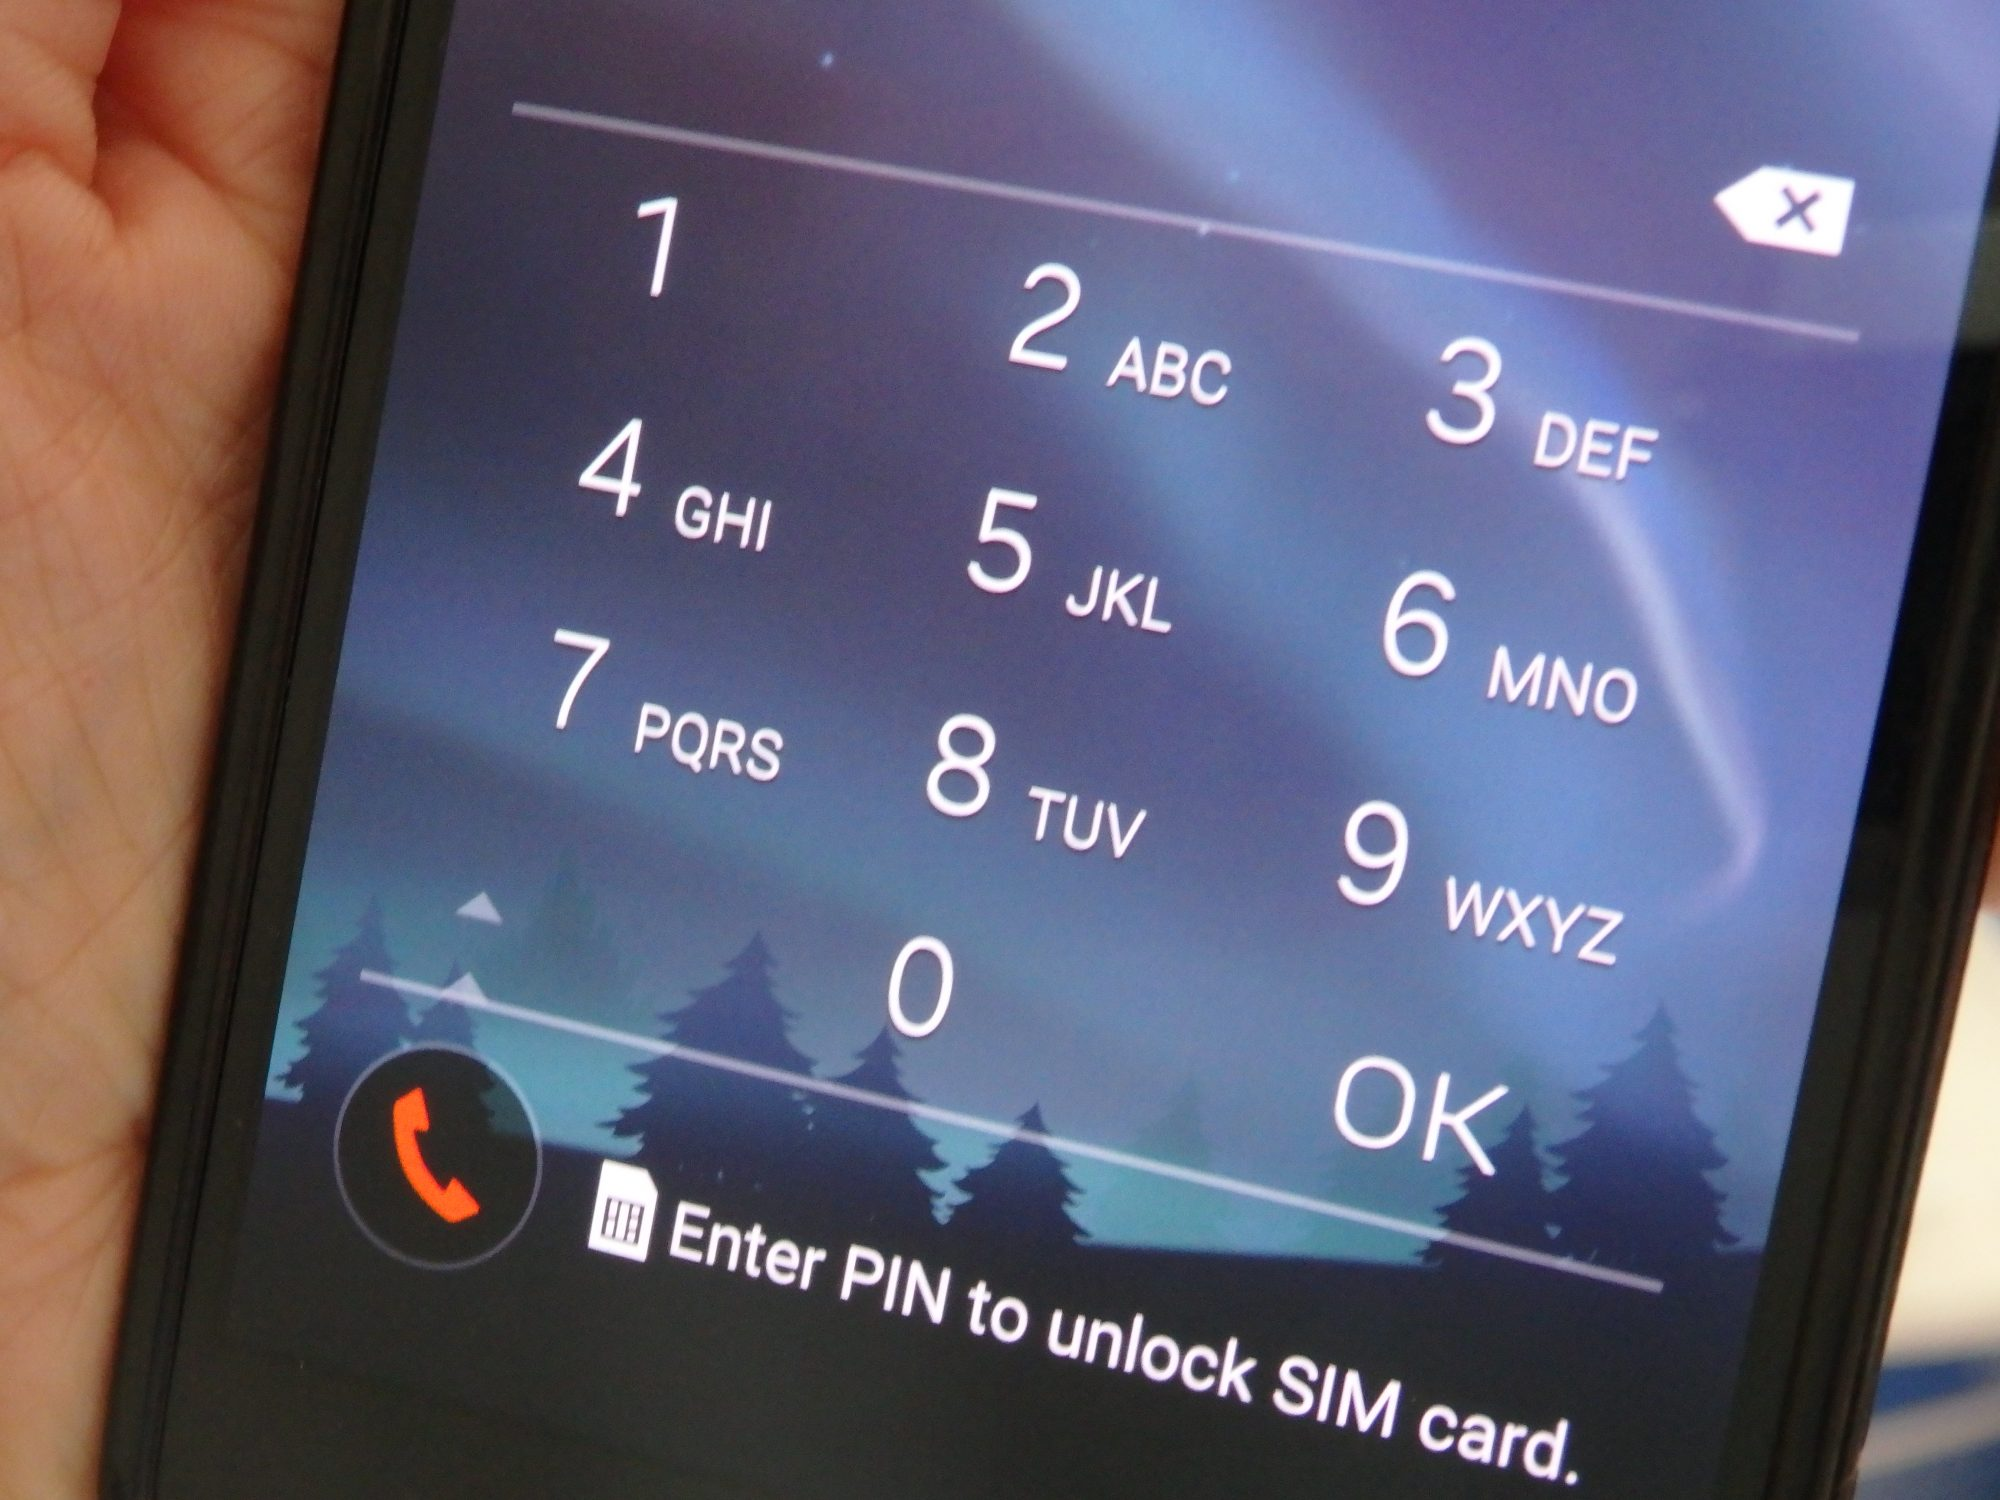 and you have to remember both pin codes when switching between your home sim card and Tellink.